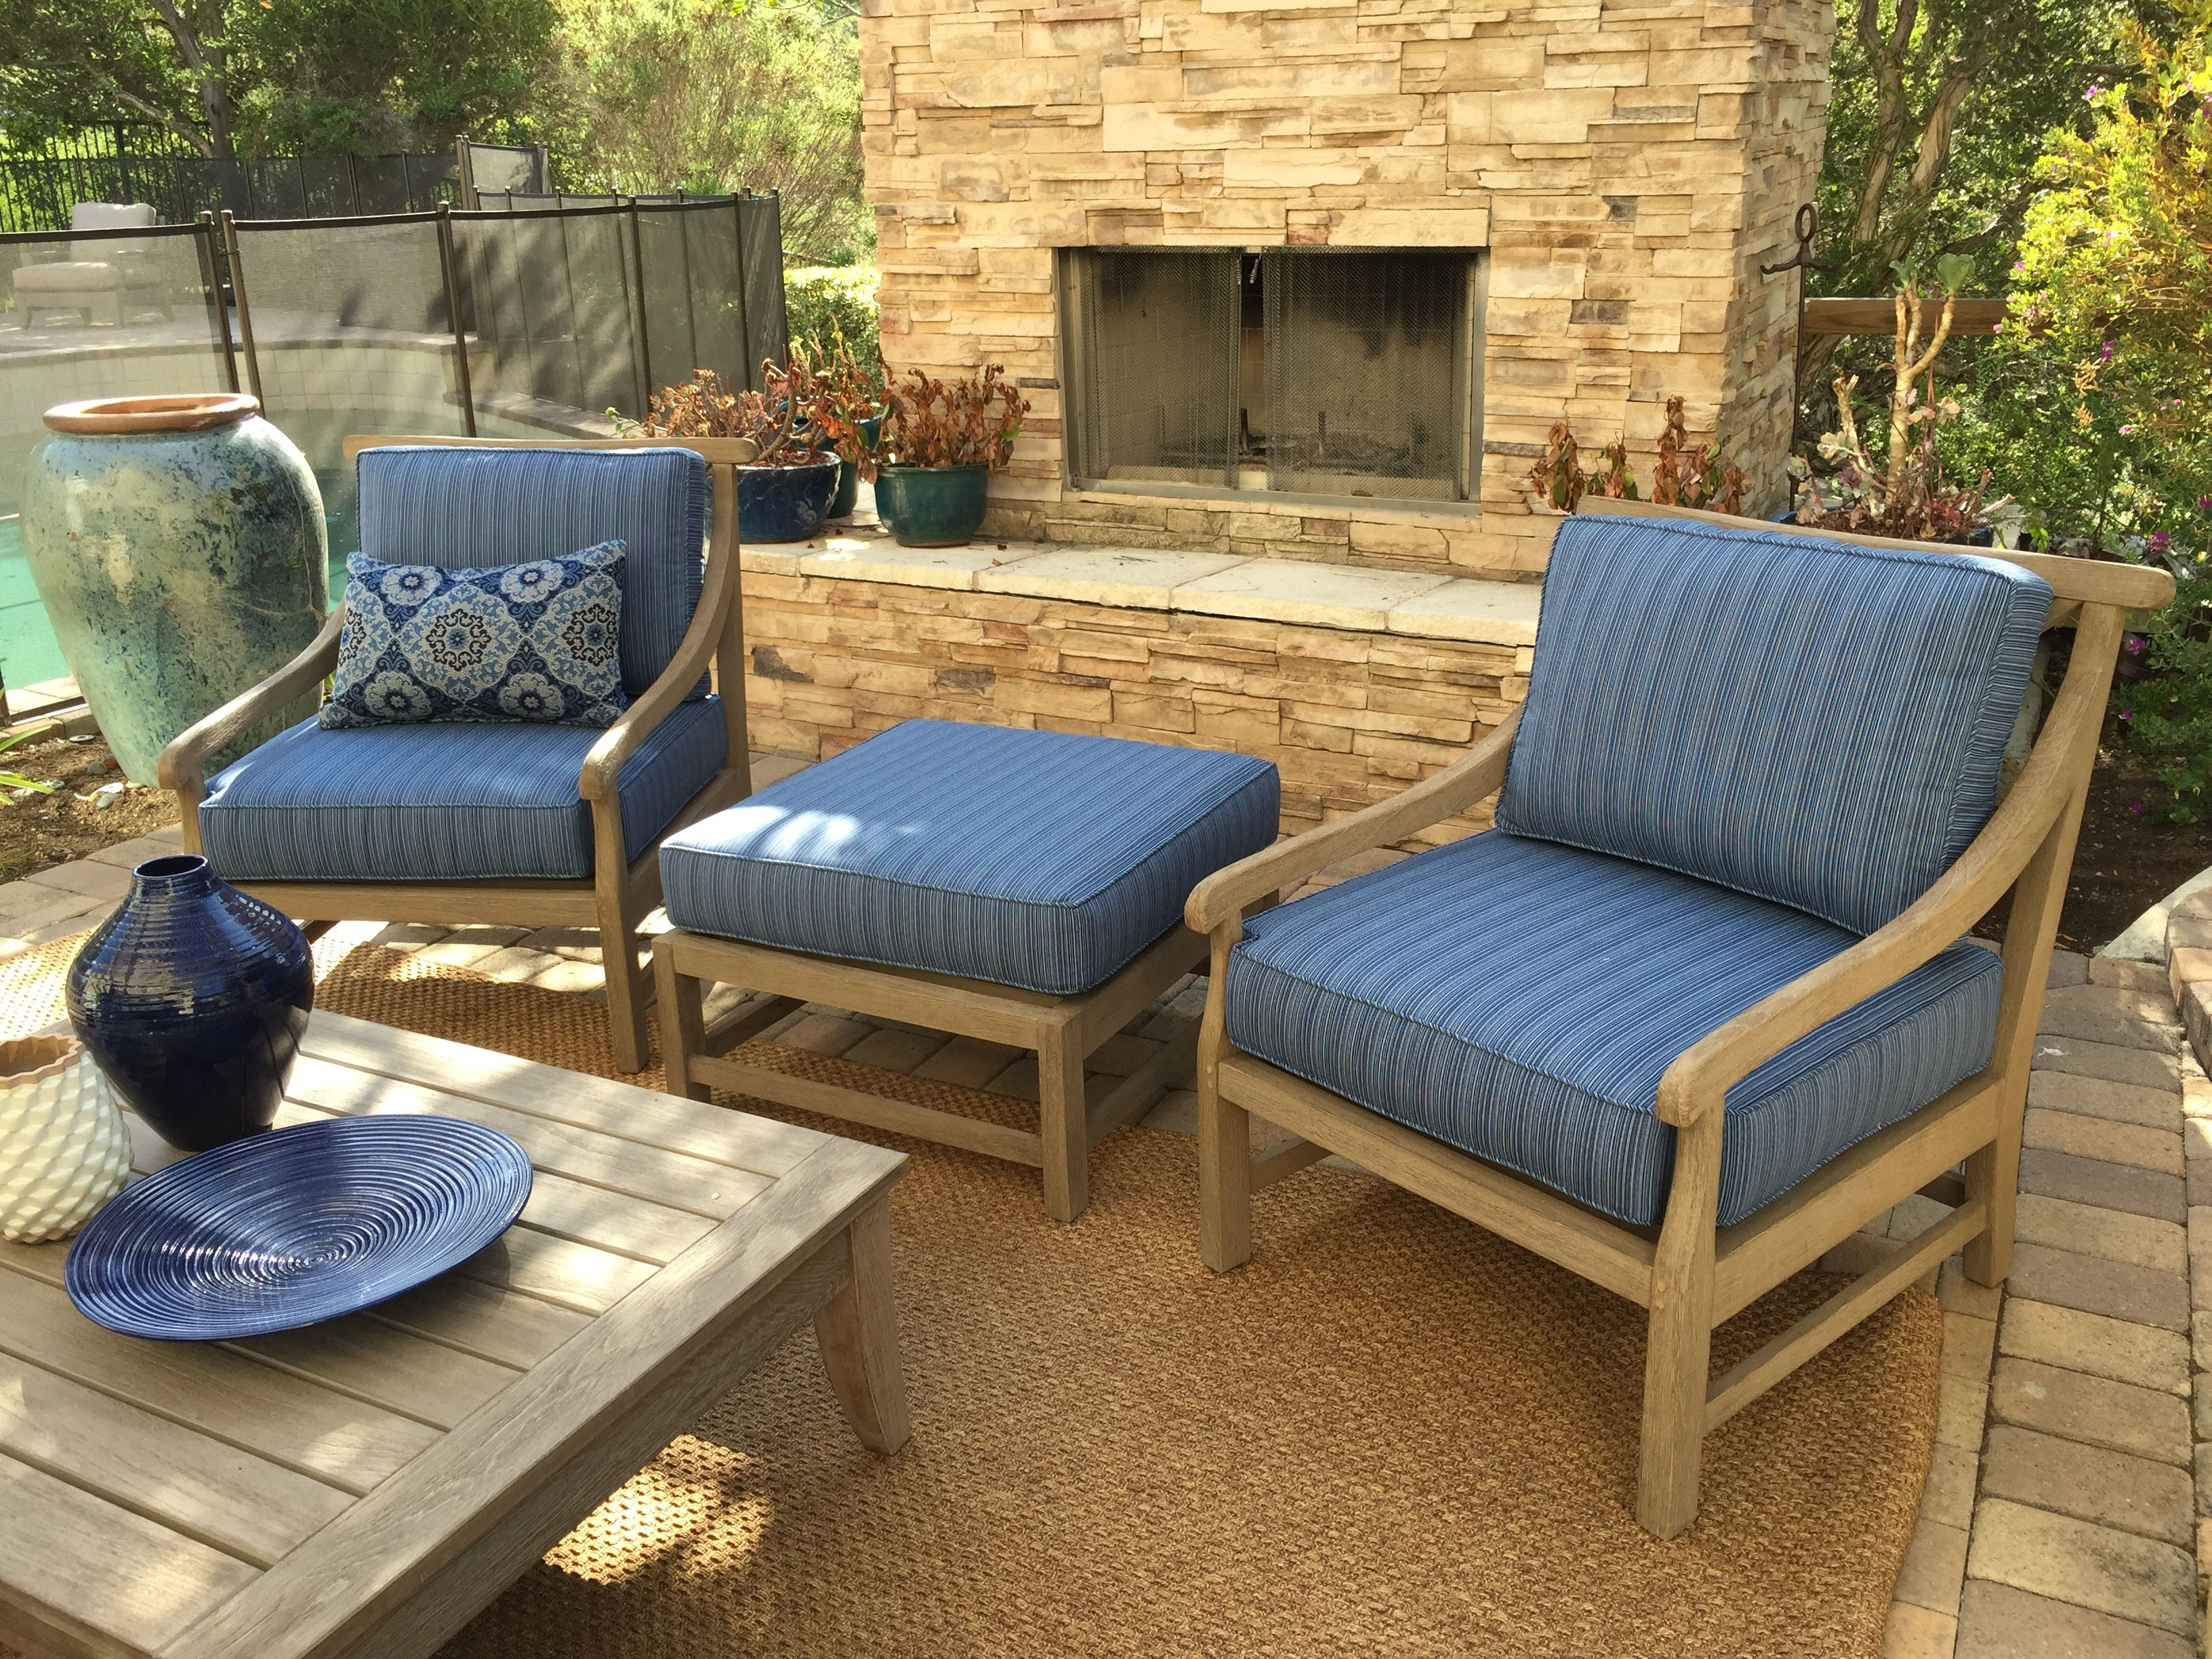 2 Outdoor Chairs 1 Ottoman